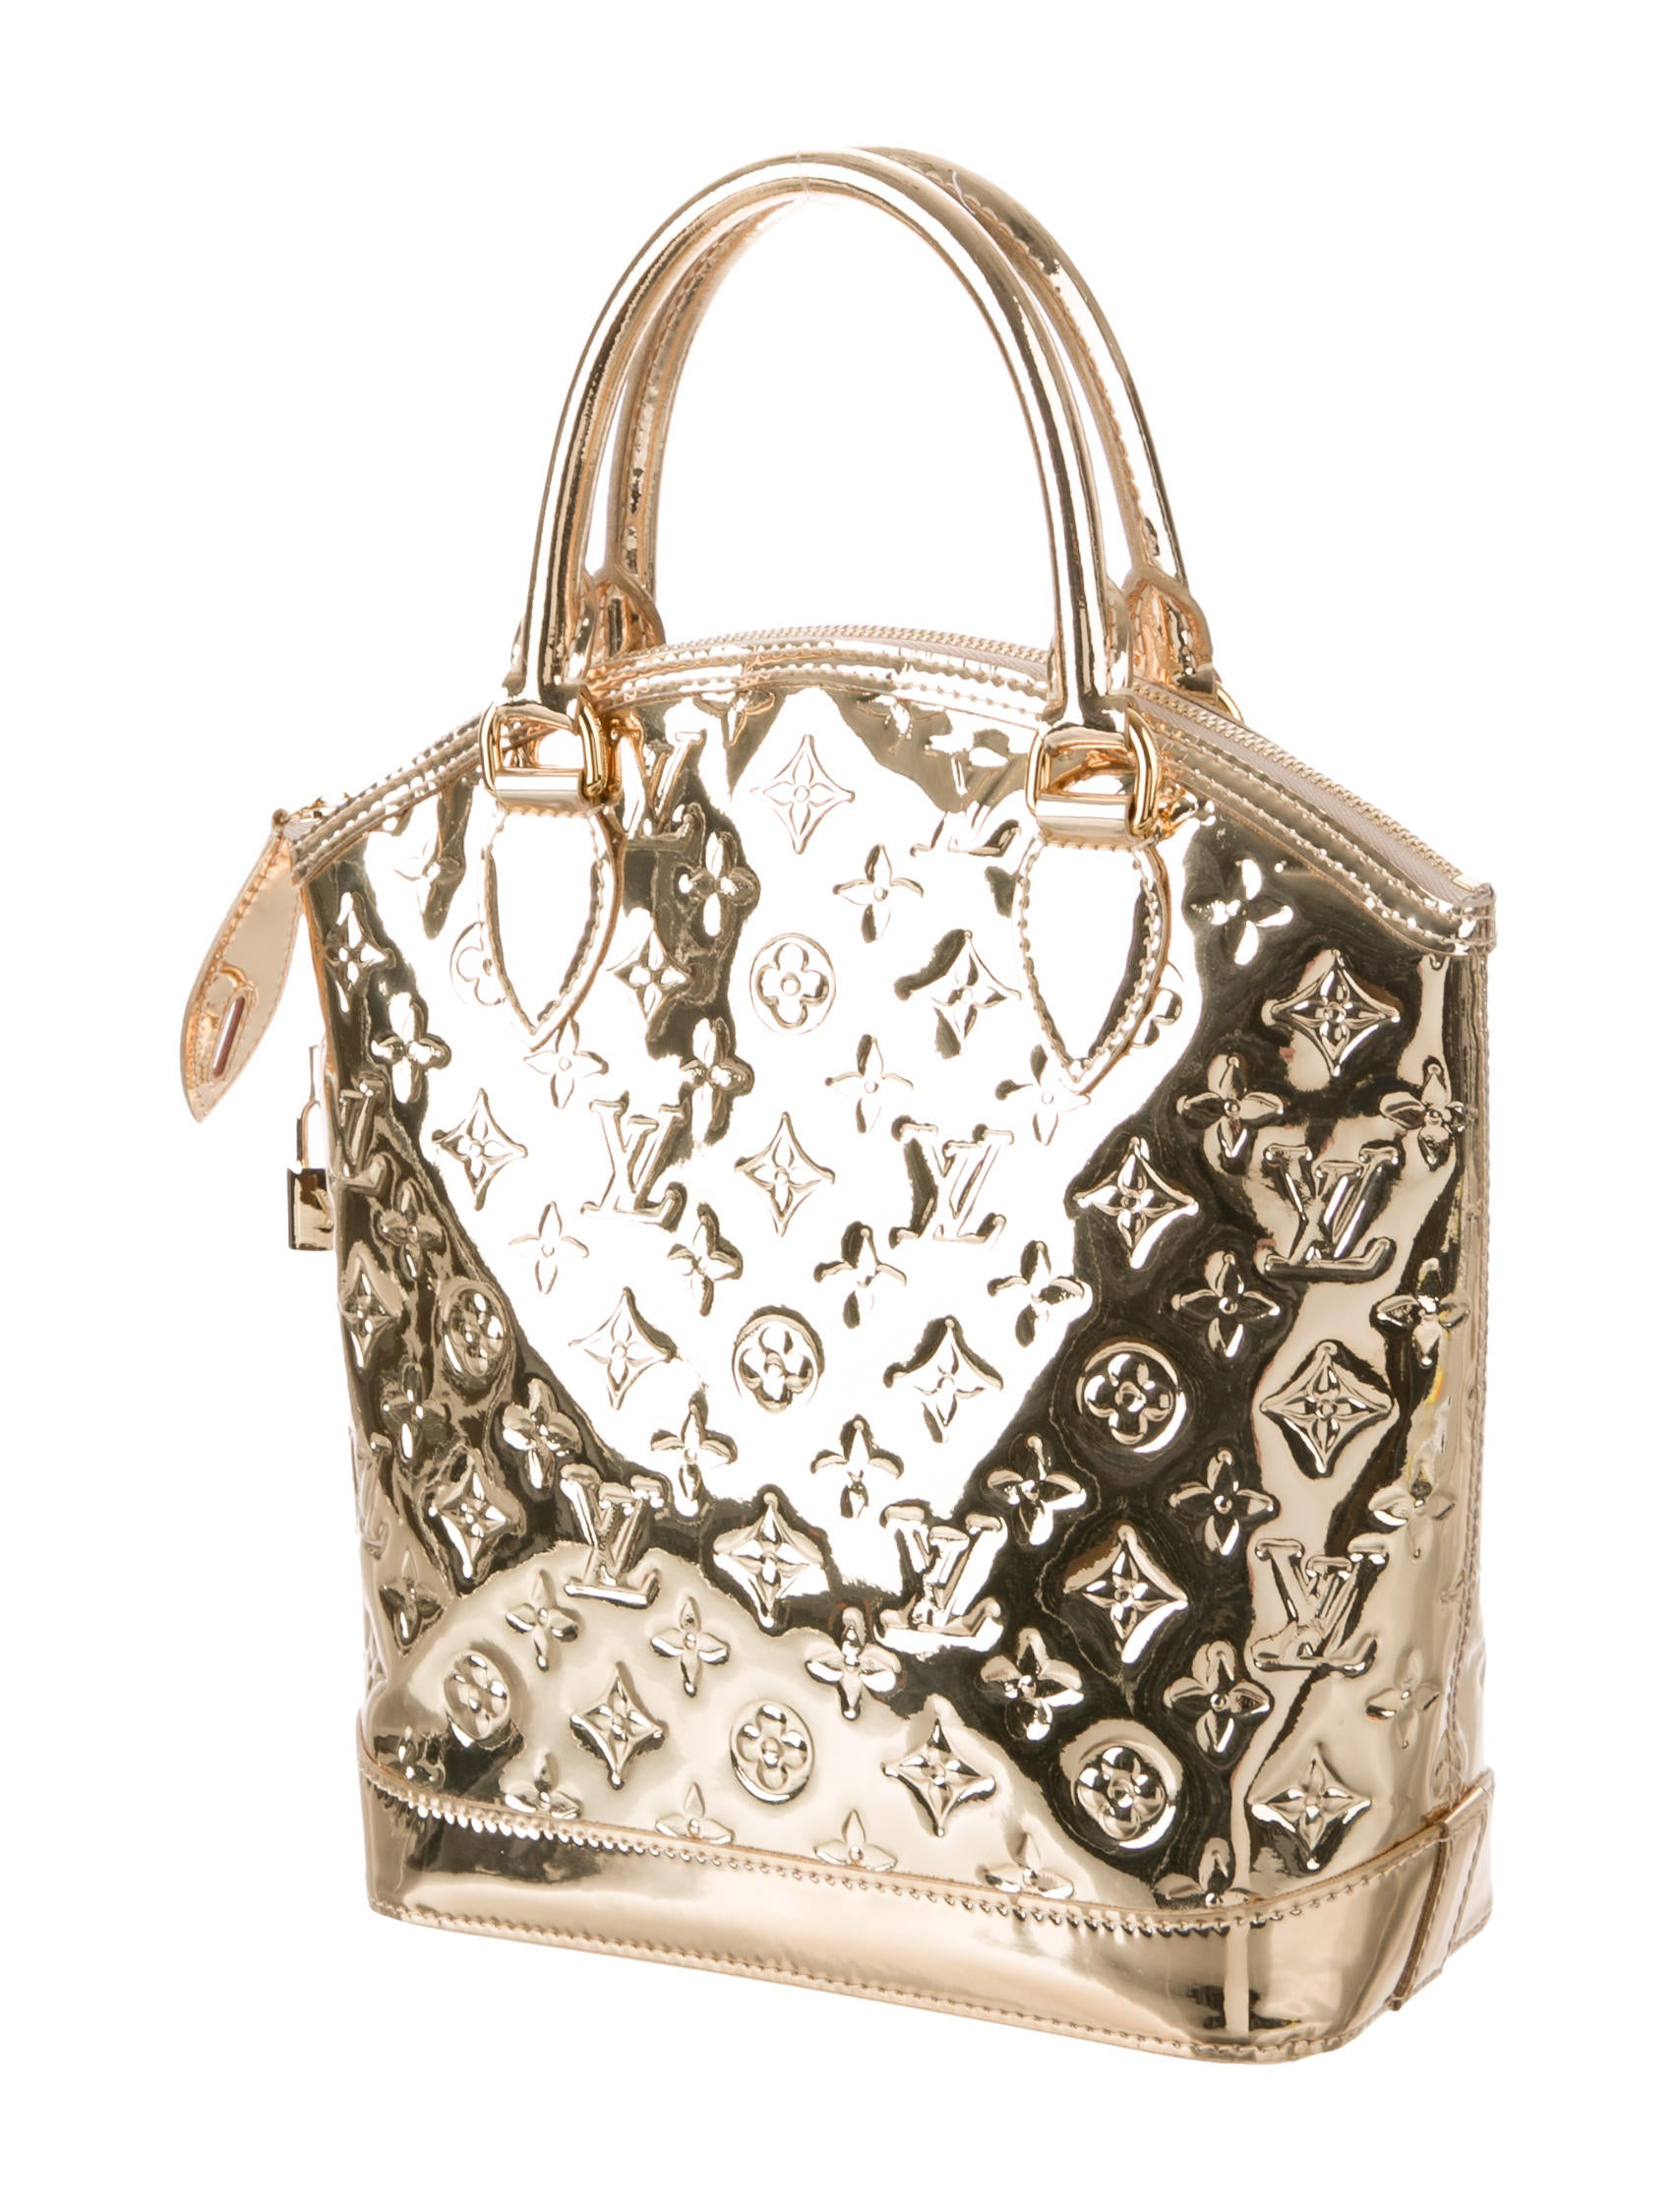 Louis vuitton miroir lockit pm handbags lou119750 for Miroir louis vuitton